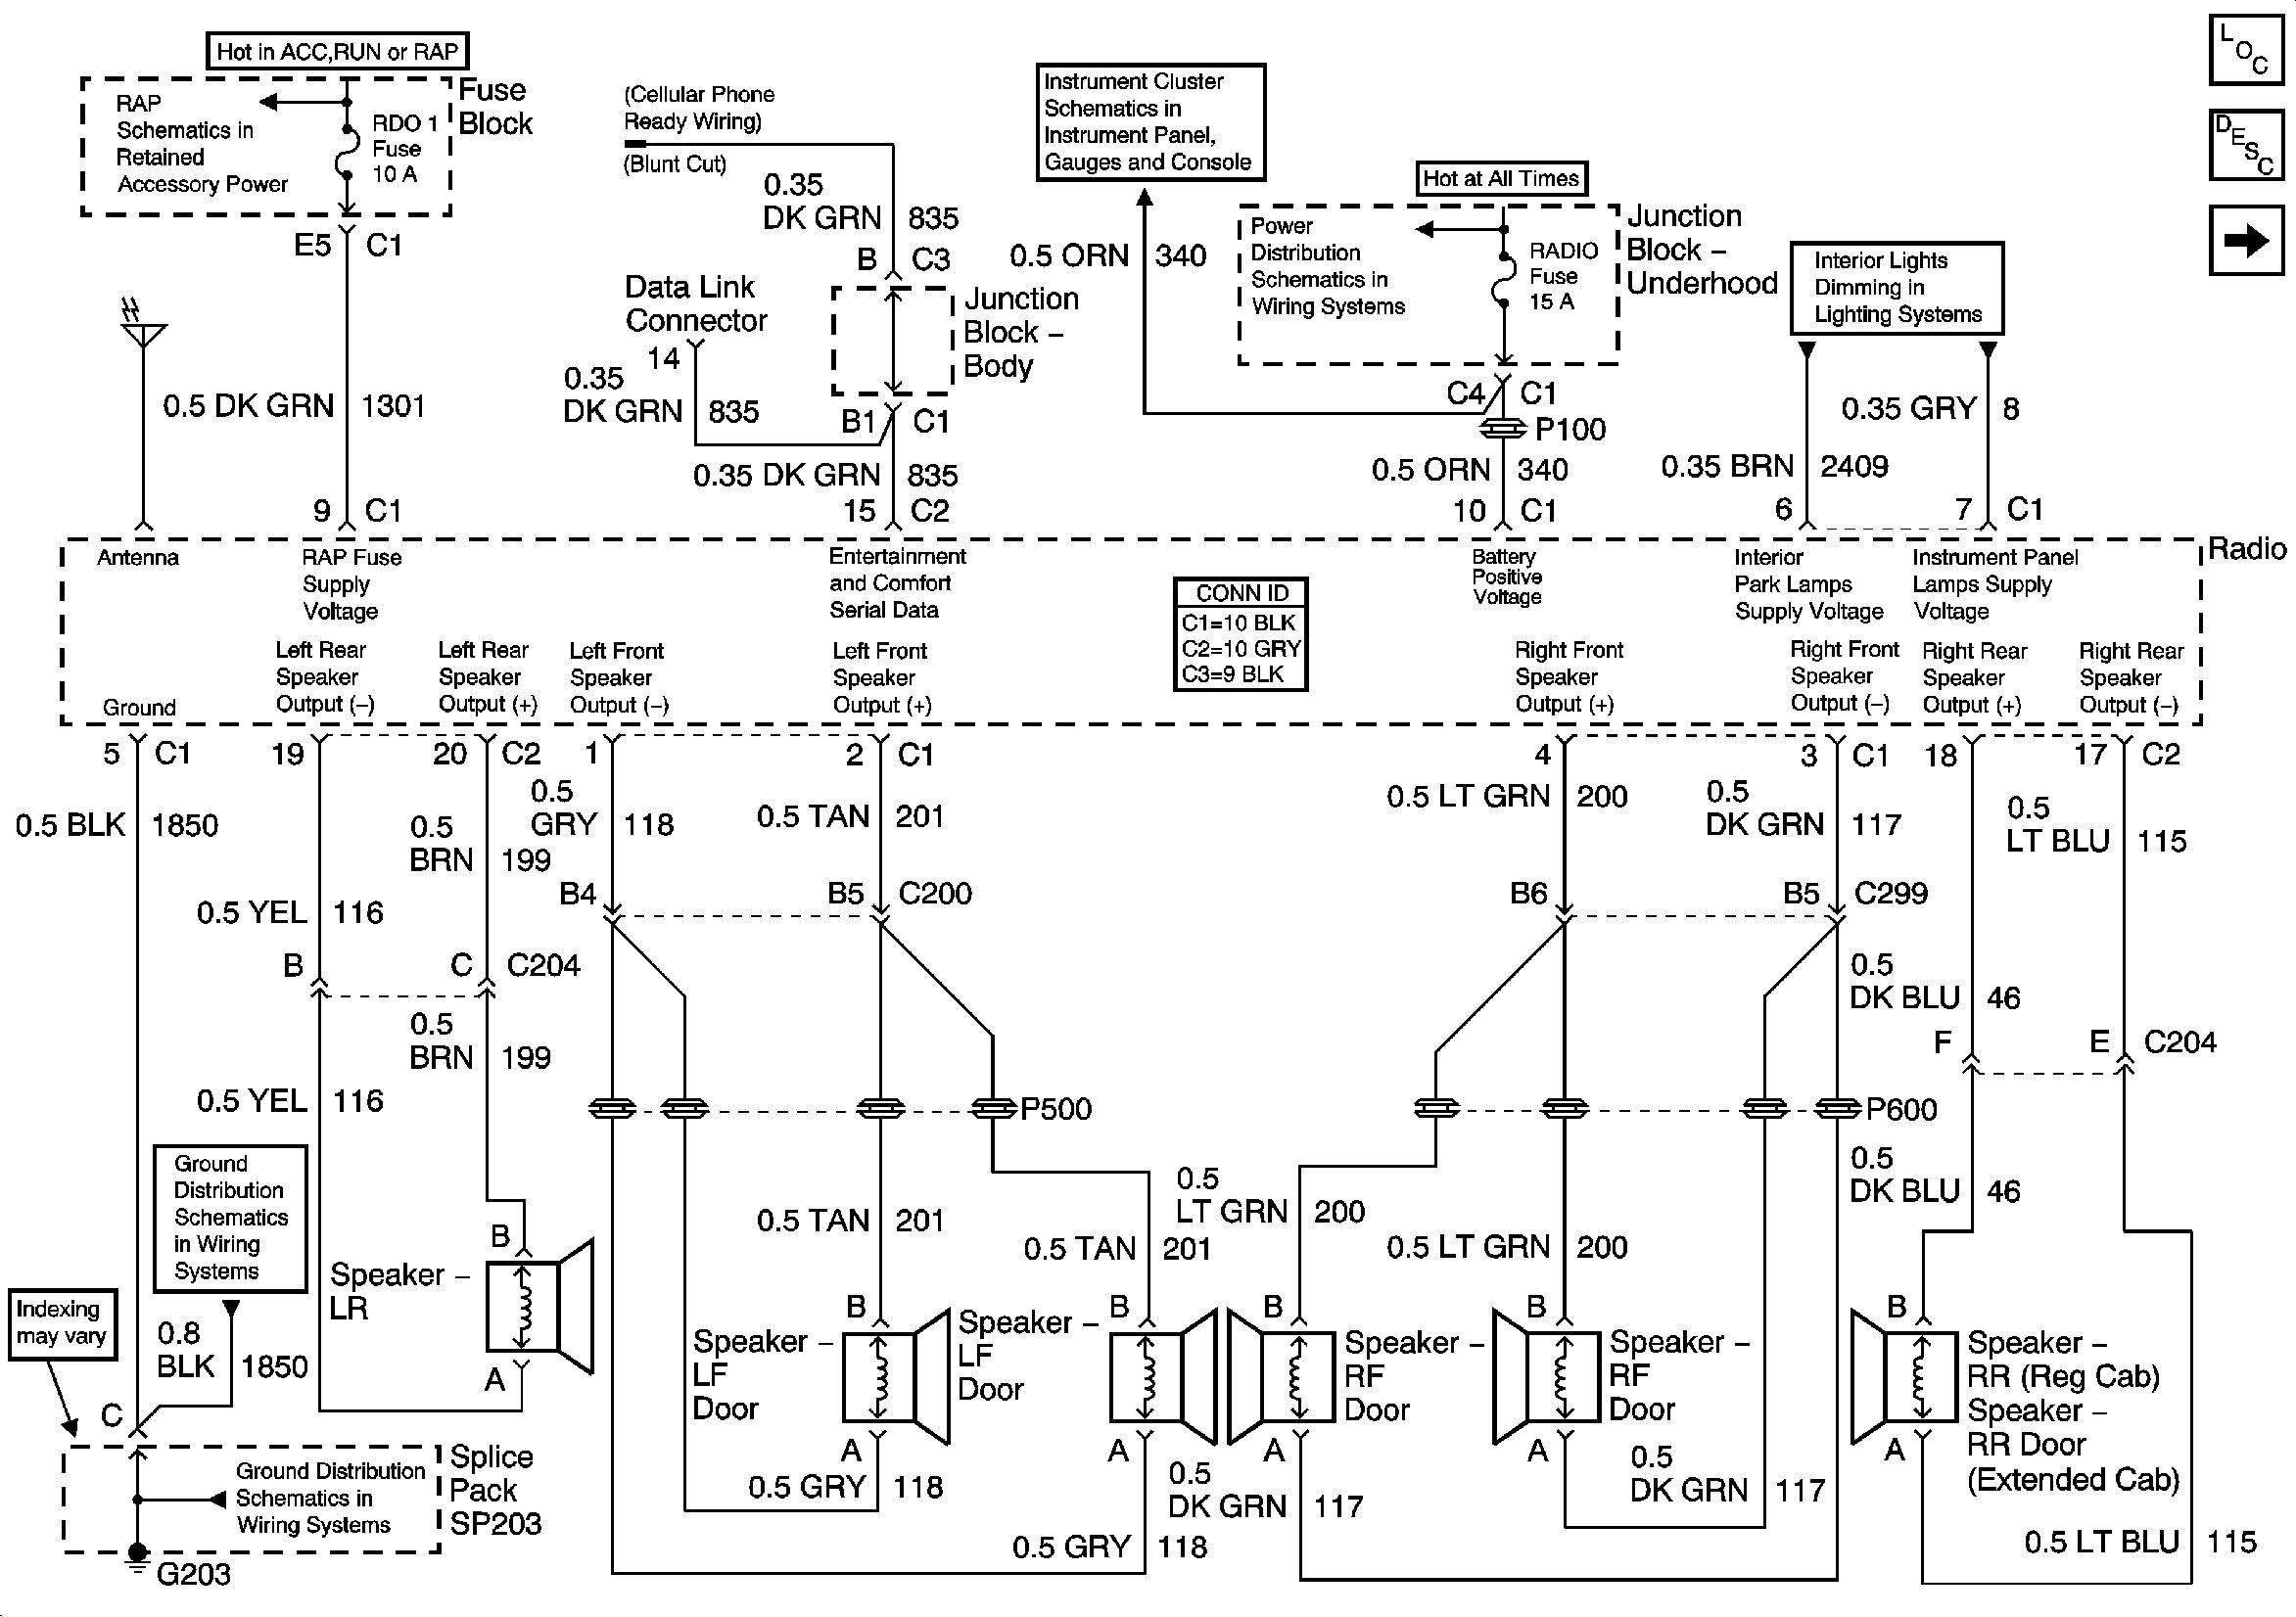 radio wiring diagram for 2007 tahoe schematic diagram 2002 Yukon Trailer Wiring Diagram 2007 tahoe radio wiring diagram headlight wiring diagram for 99 chevy tahoe small resolution of wiring